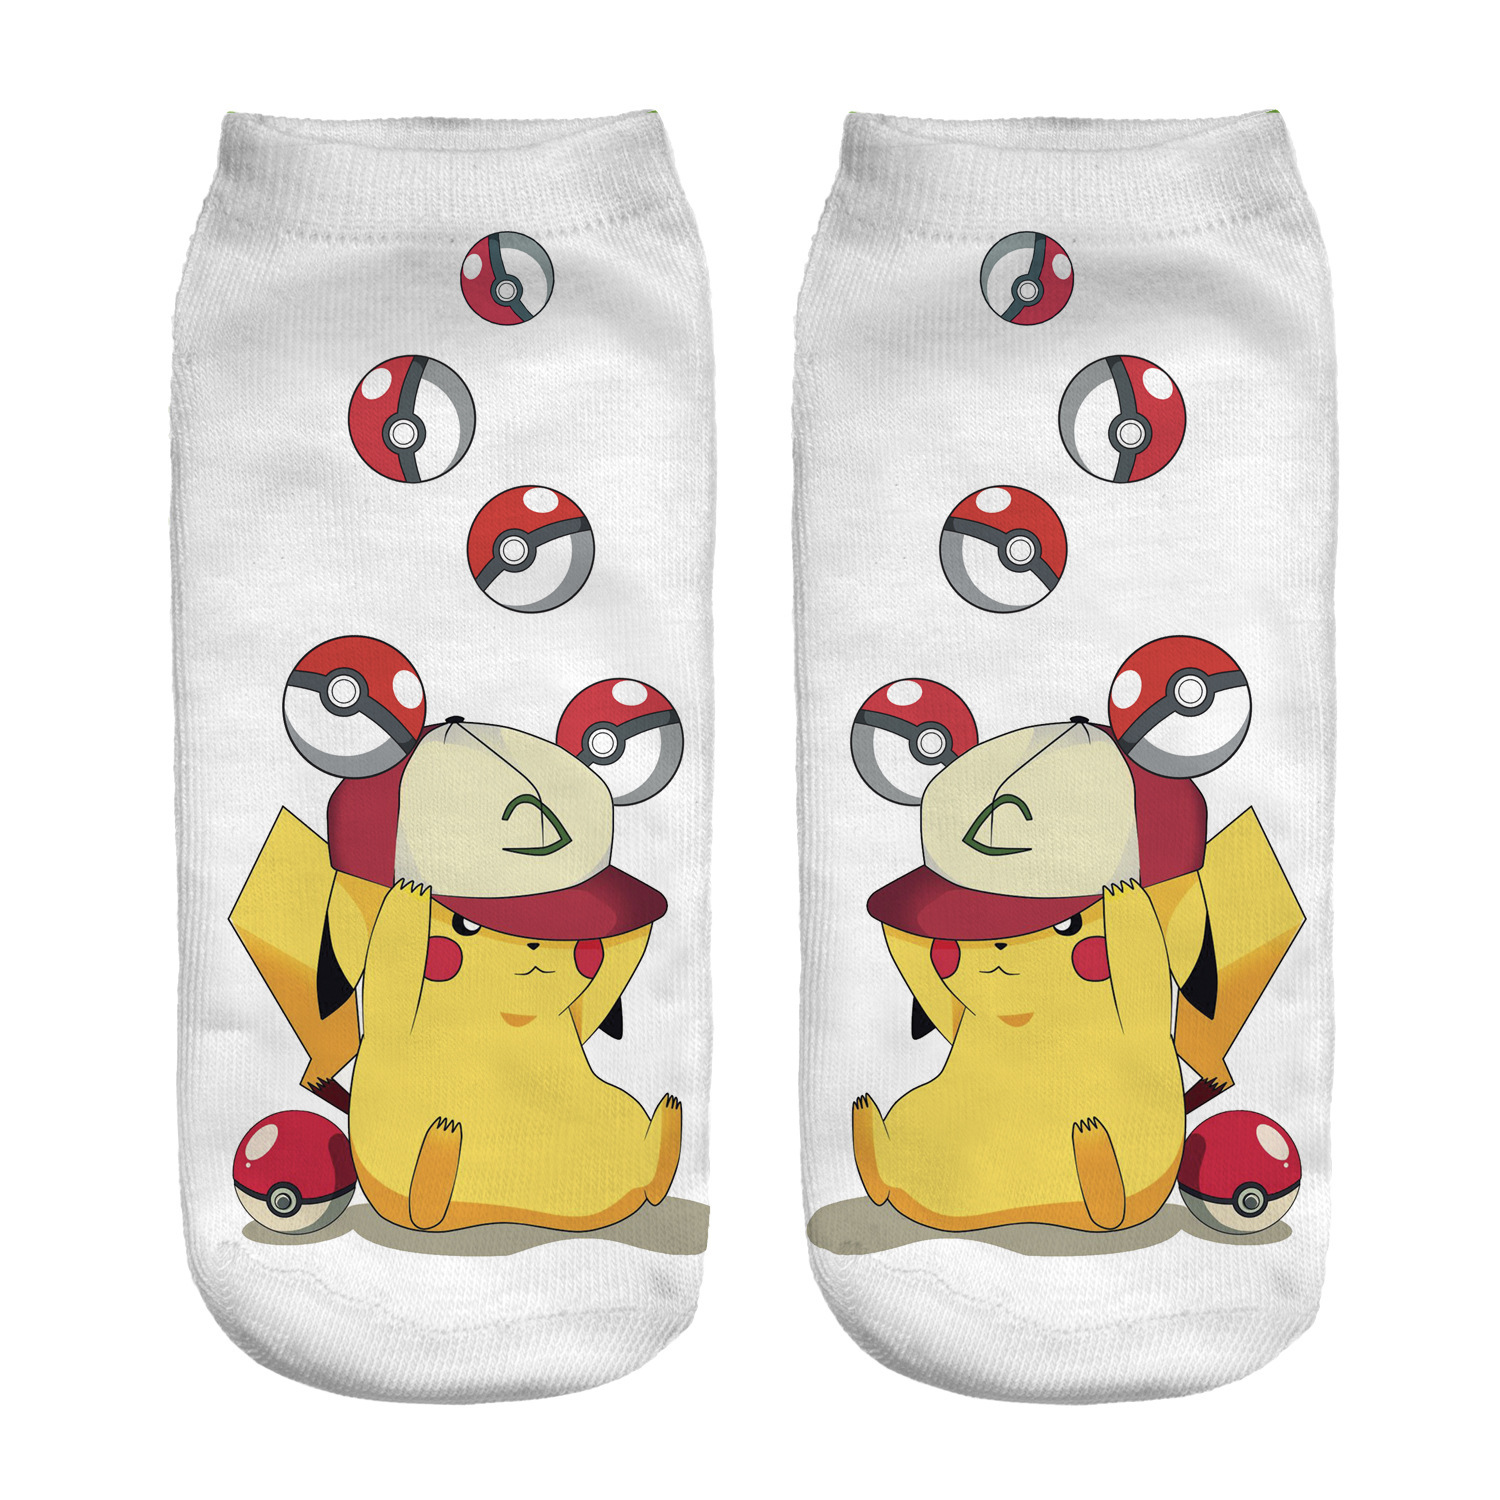 Kawaii Pokemon Poke Ball Pikachu Girl Cotton Socks Funny Woman Cute Socks Japanese Cartoon Printed Boy Short Socks